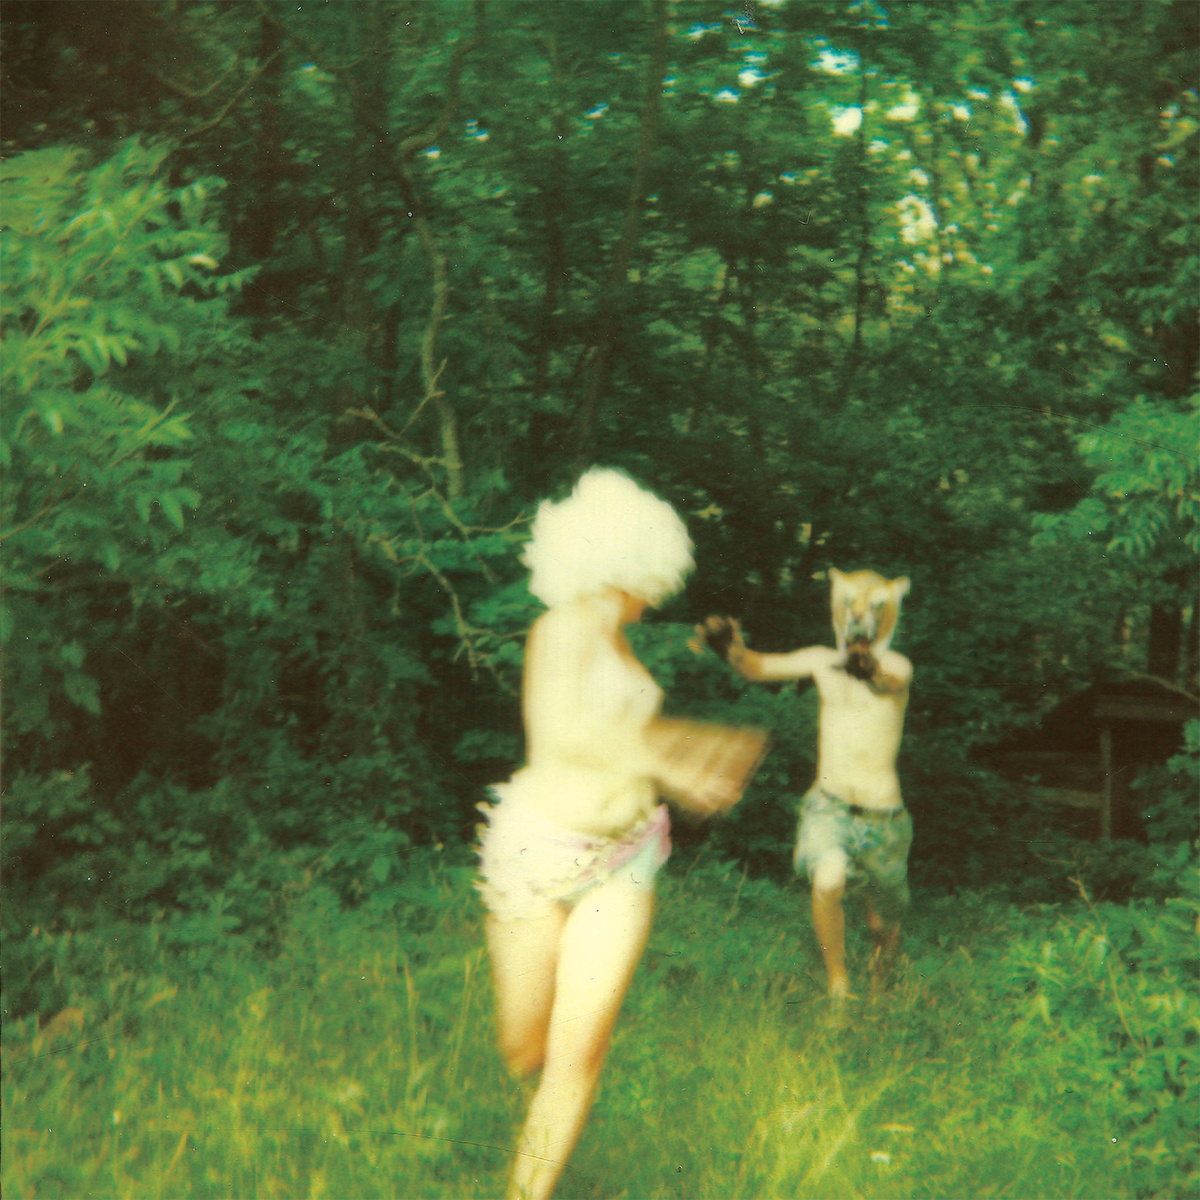 Harmlessness review